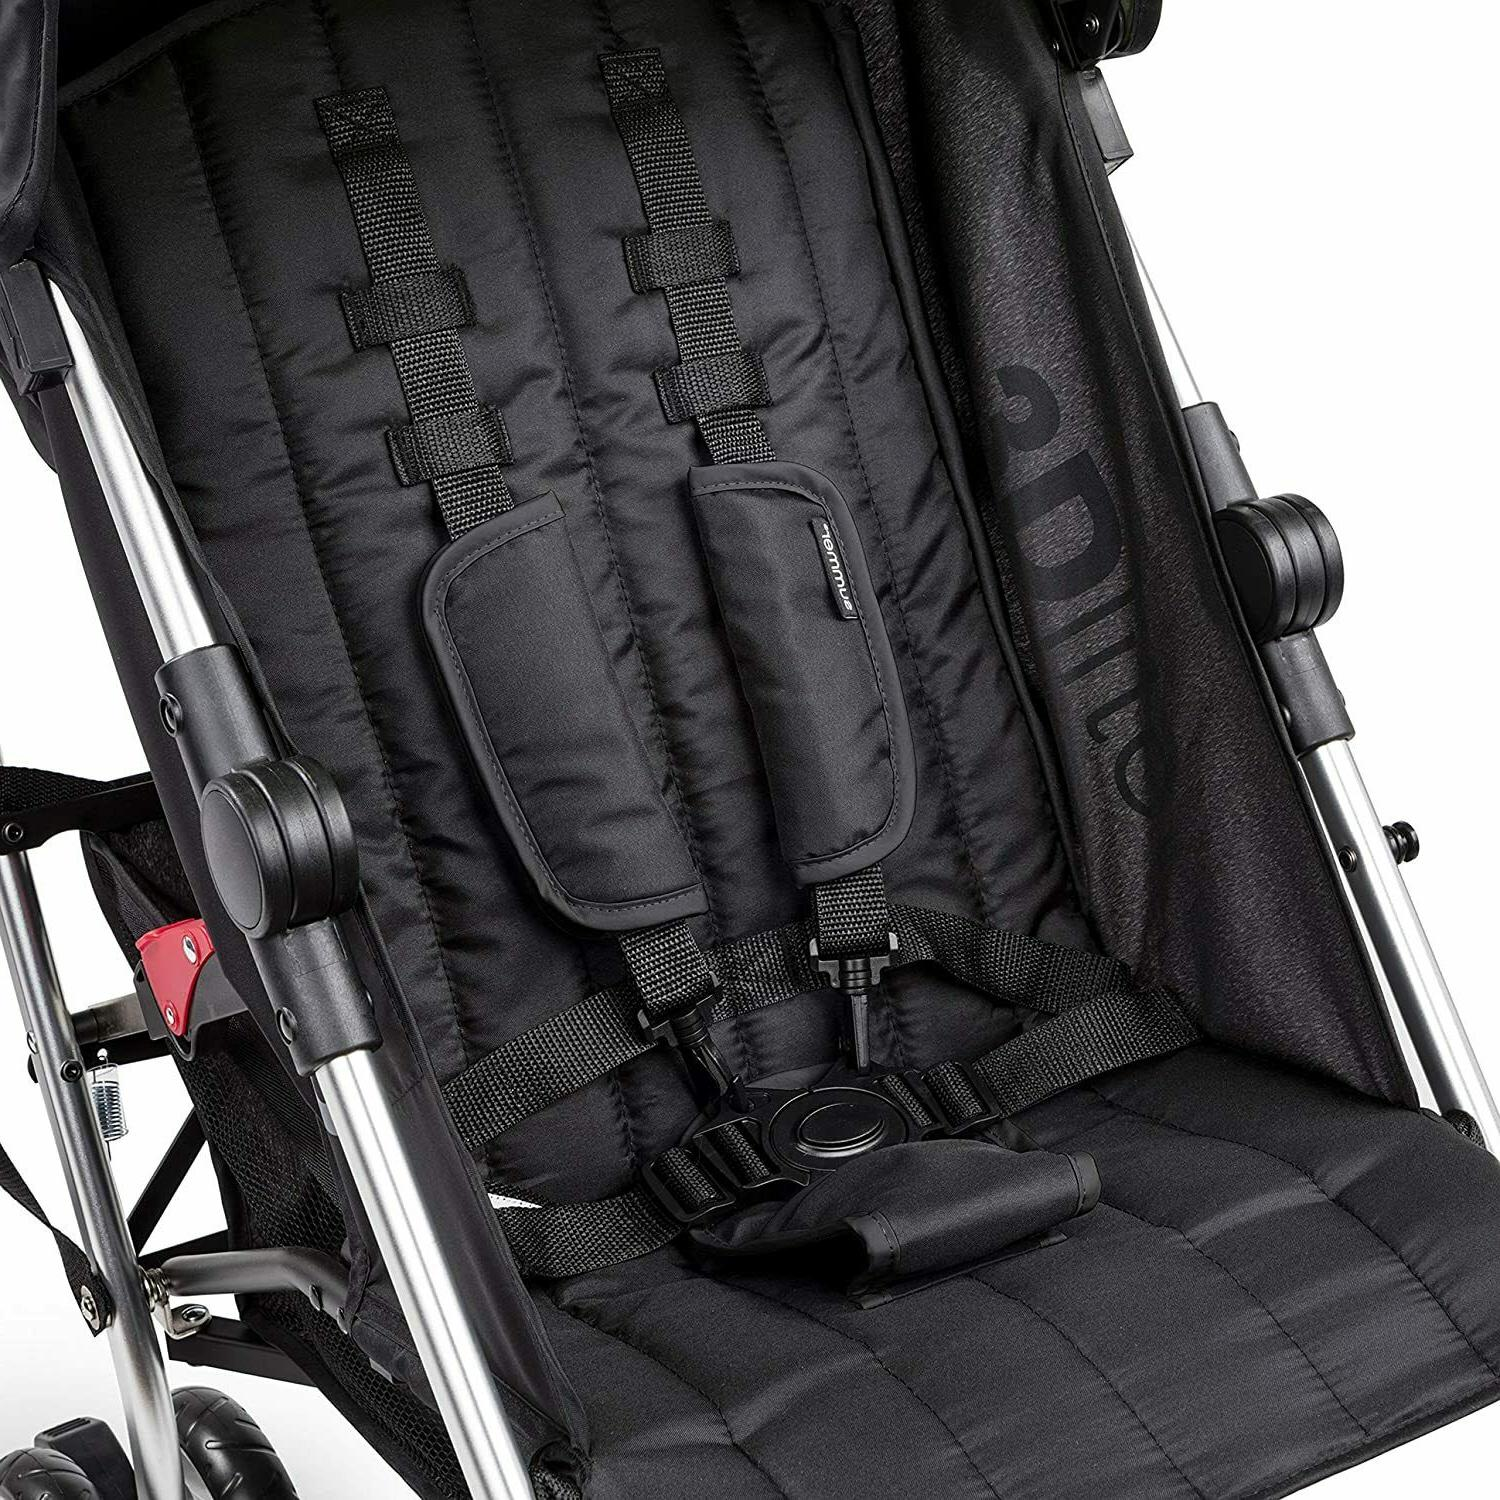 Convenience Stroller Baby Frame compact